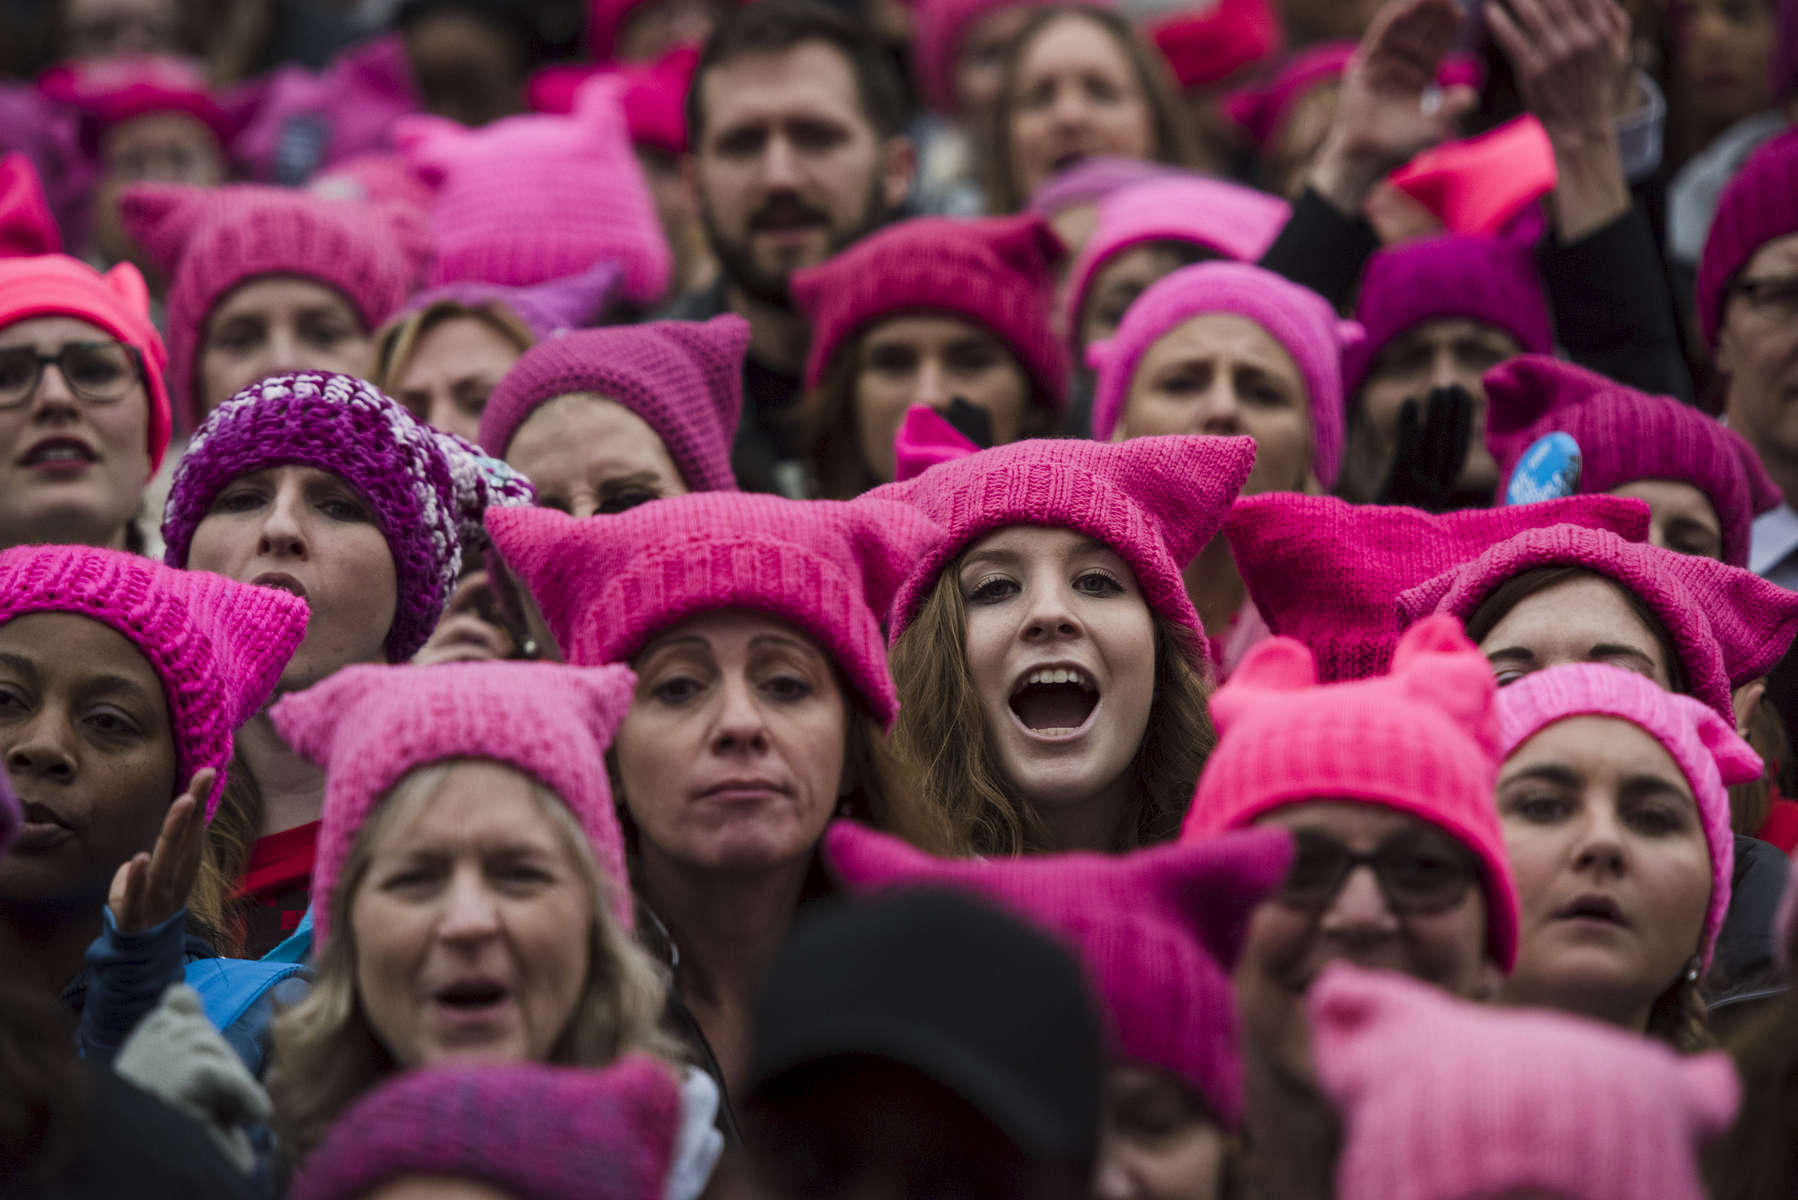 WASHINGTON, DC- JAN 21-  Groups gather for the Women's March on Washington on Saturday, Jan. 21, 2017 in Washington, D.C.  (Amanda Voisard/For The Washington Post)